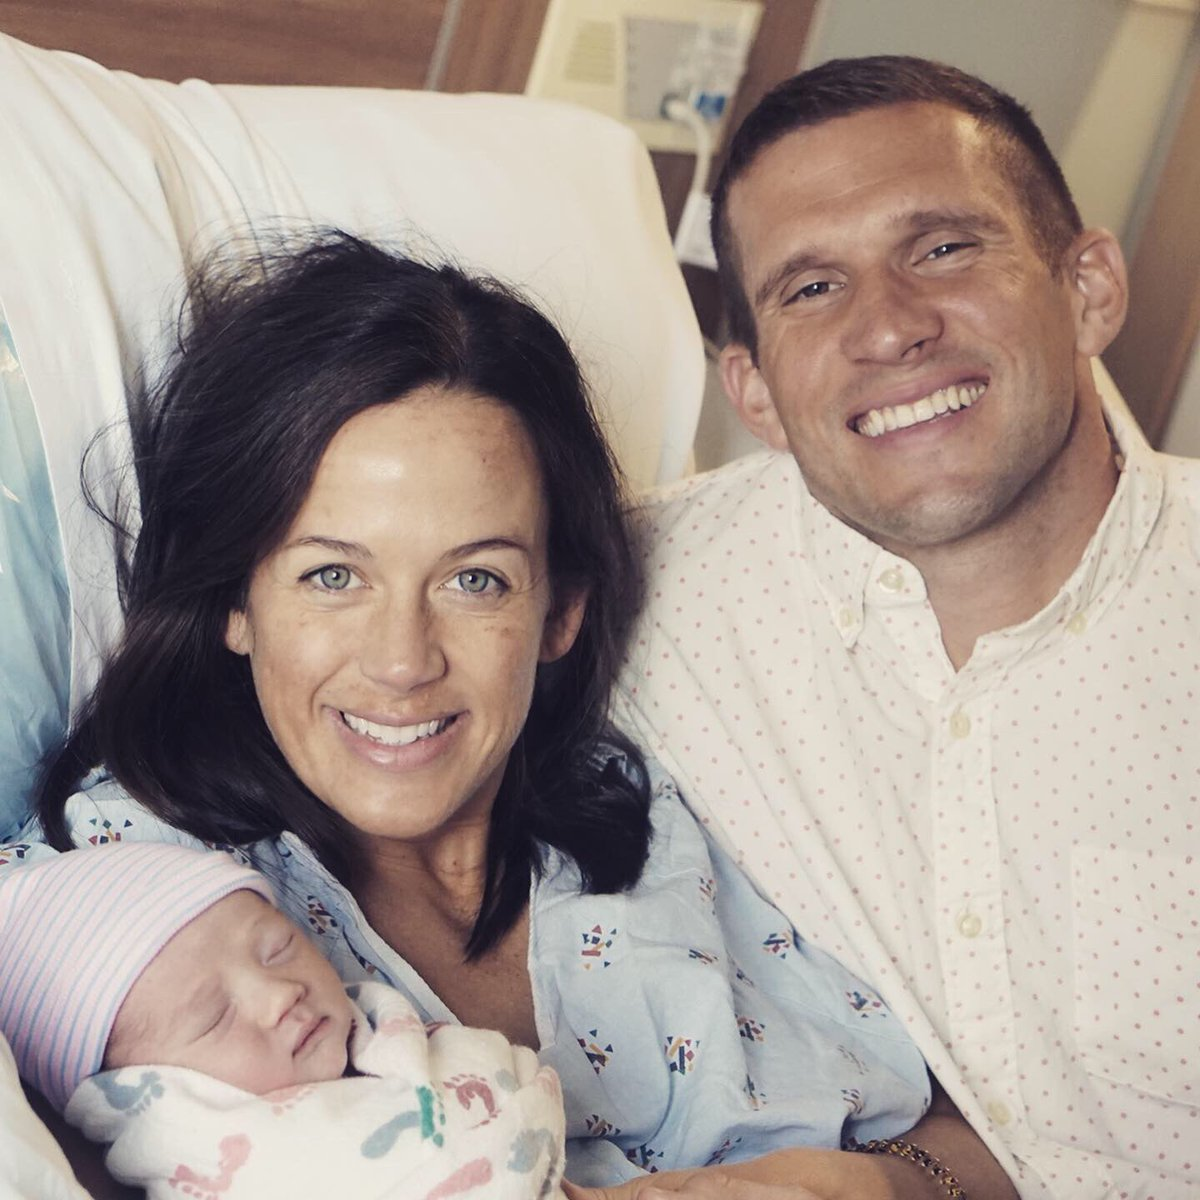 Mommy was BiGTime today! Meet Baby JackJack! We love you with all of our hearts, Son. All in.